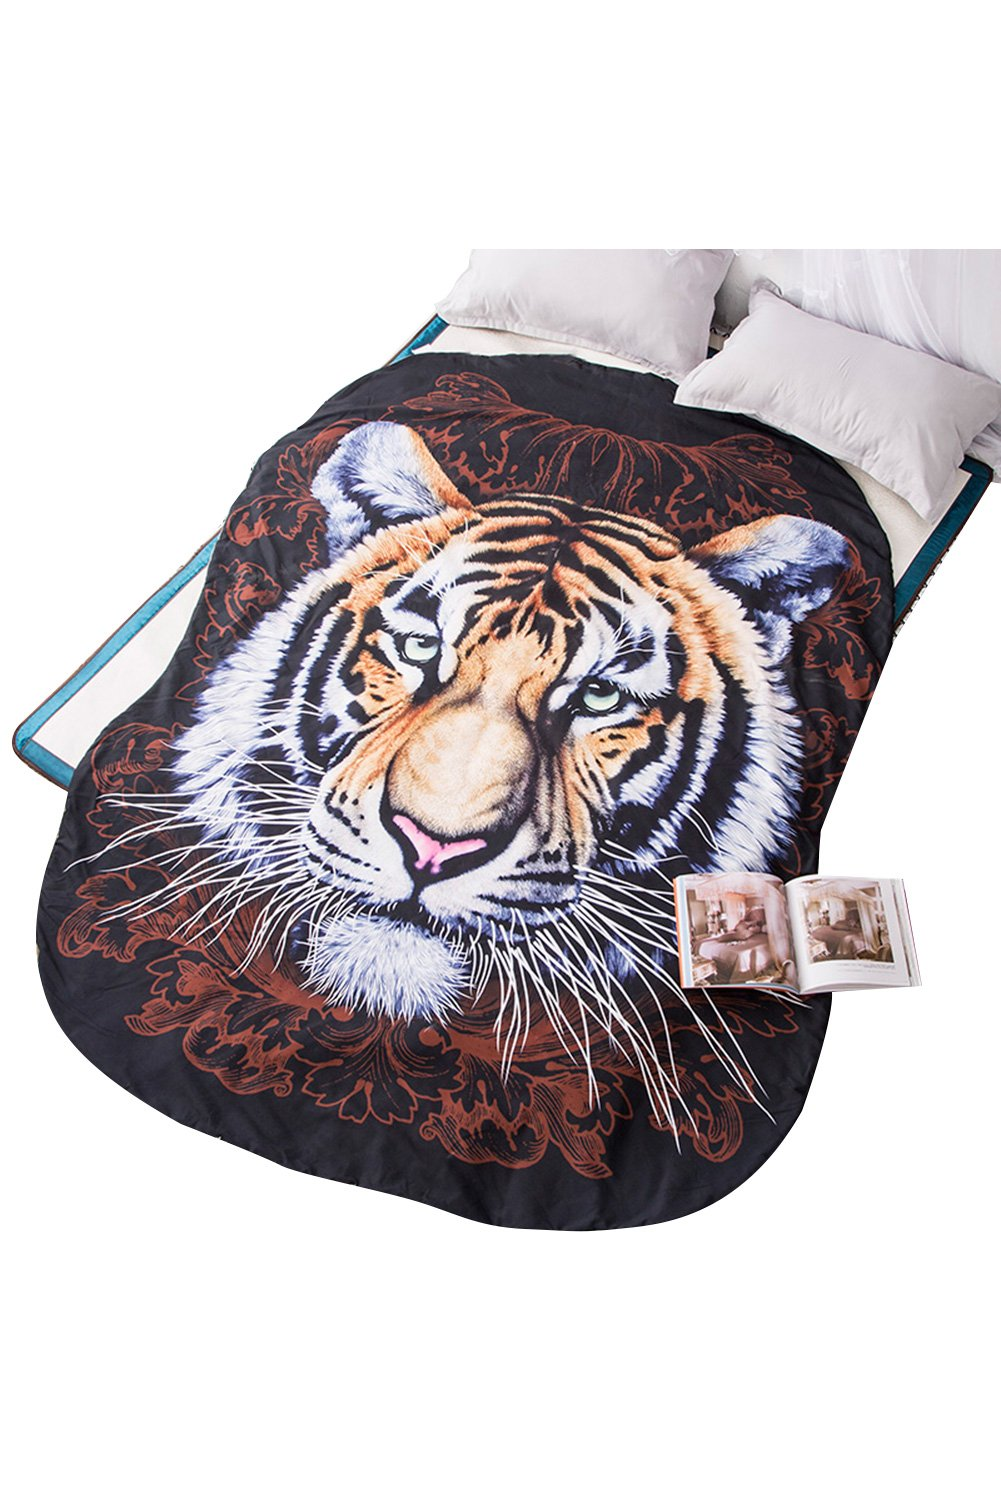 Getime 3D Animal Prints Blanket Bedding Tiger Shaped Summer Quilt Comforter Washable Light Quilt